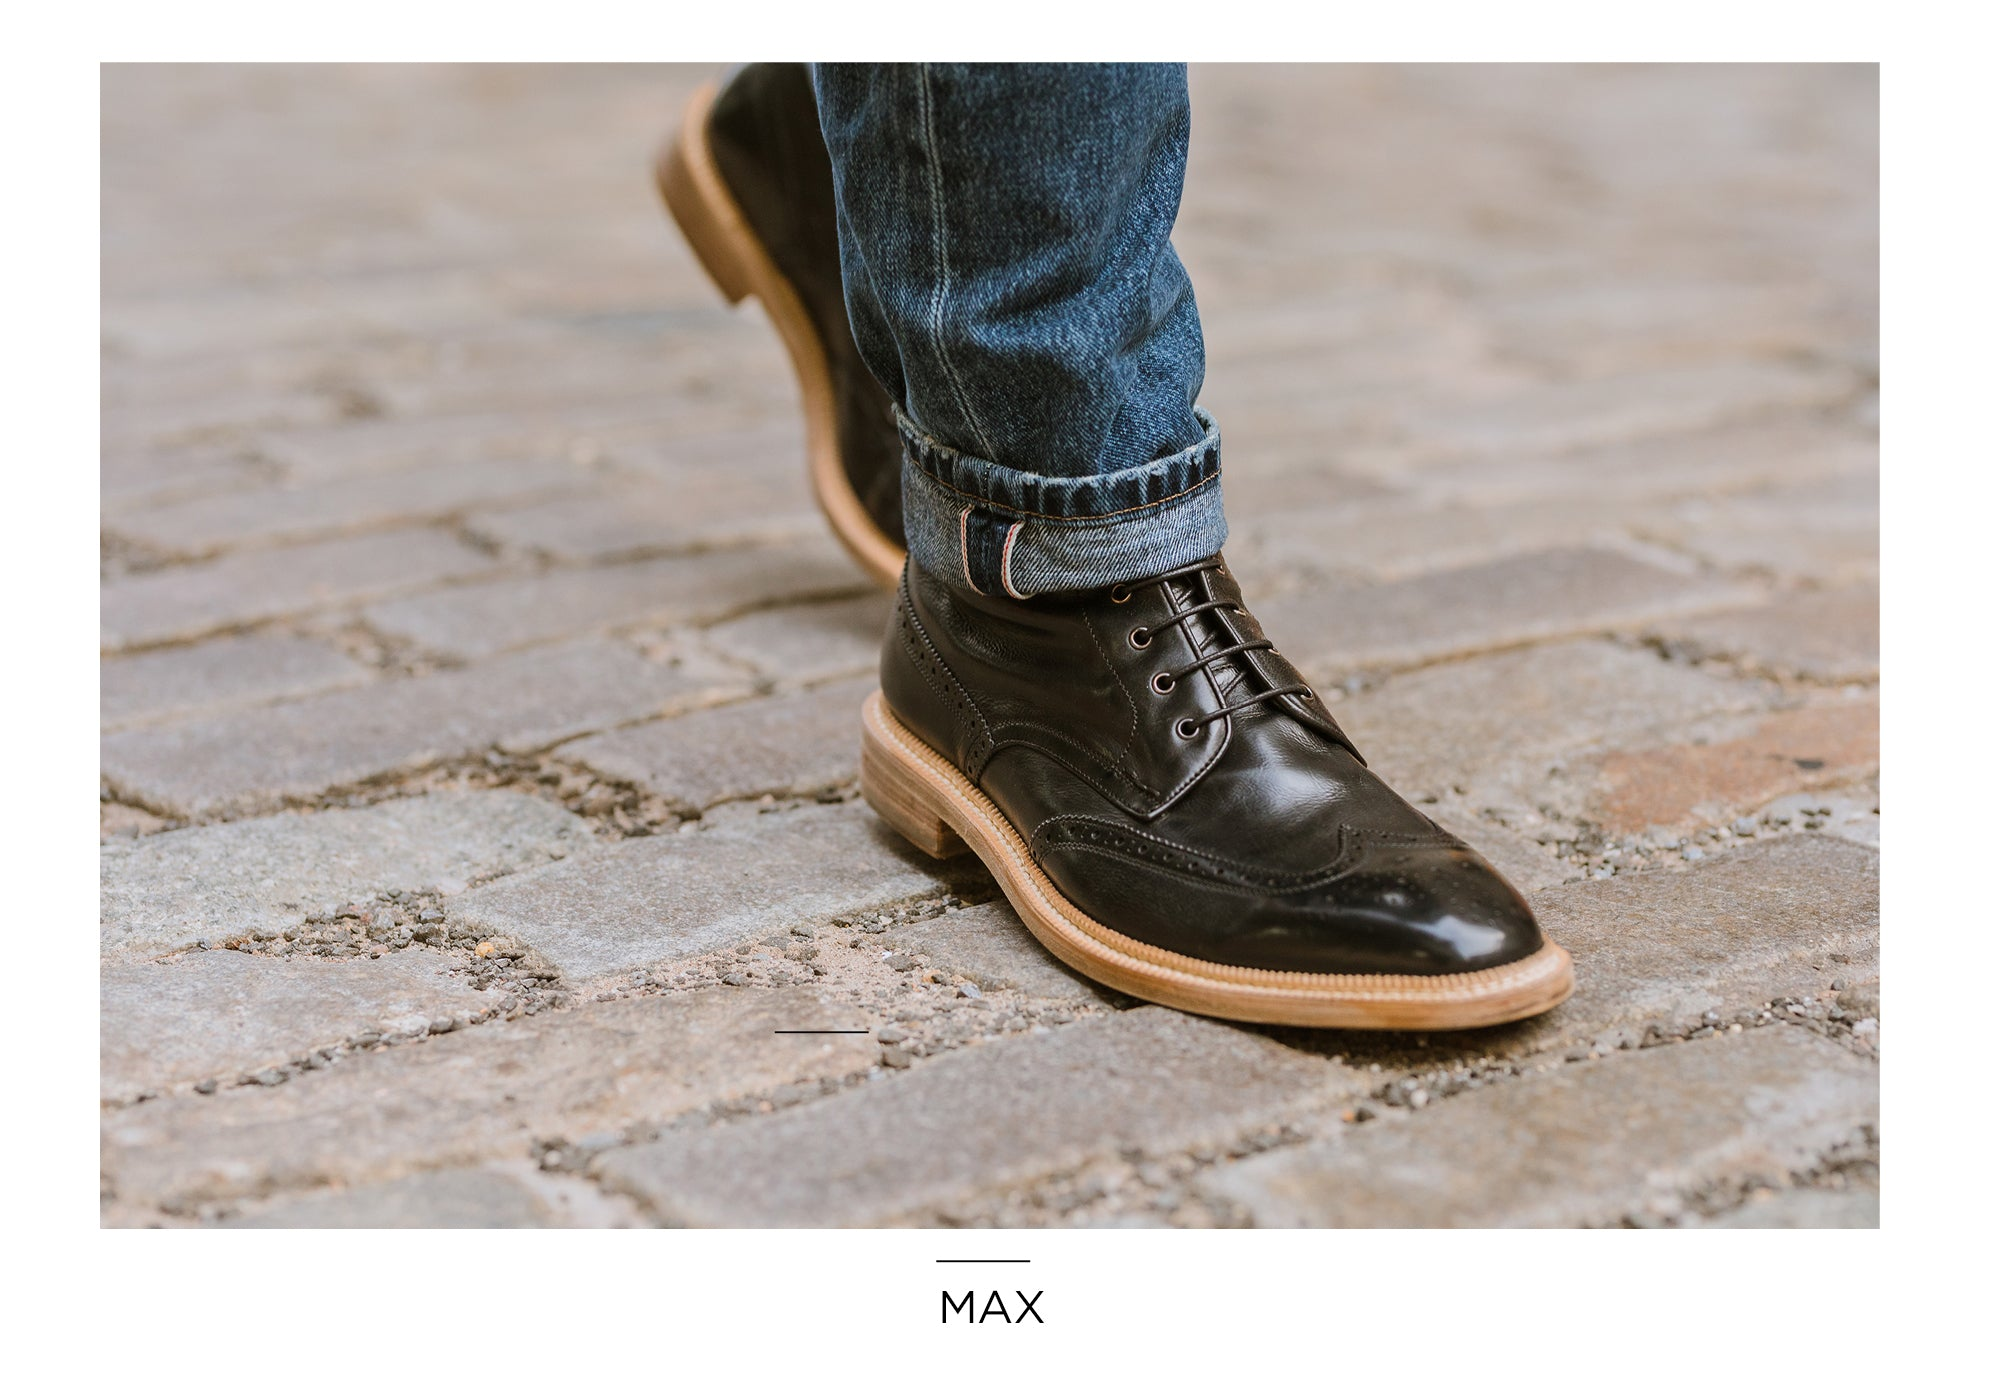 Max Wingtip Boot in Black by Gordon Rush